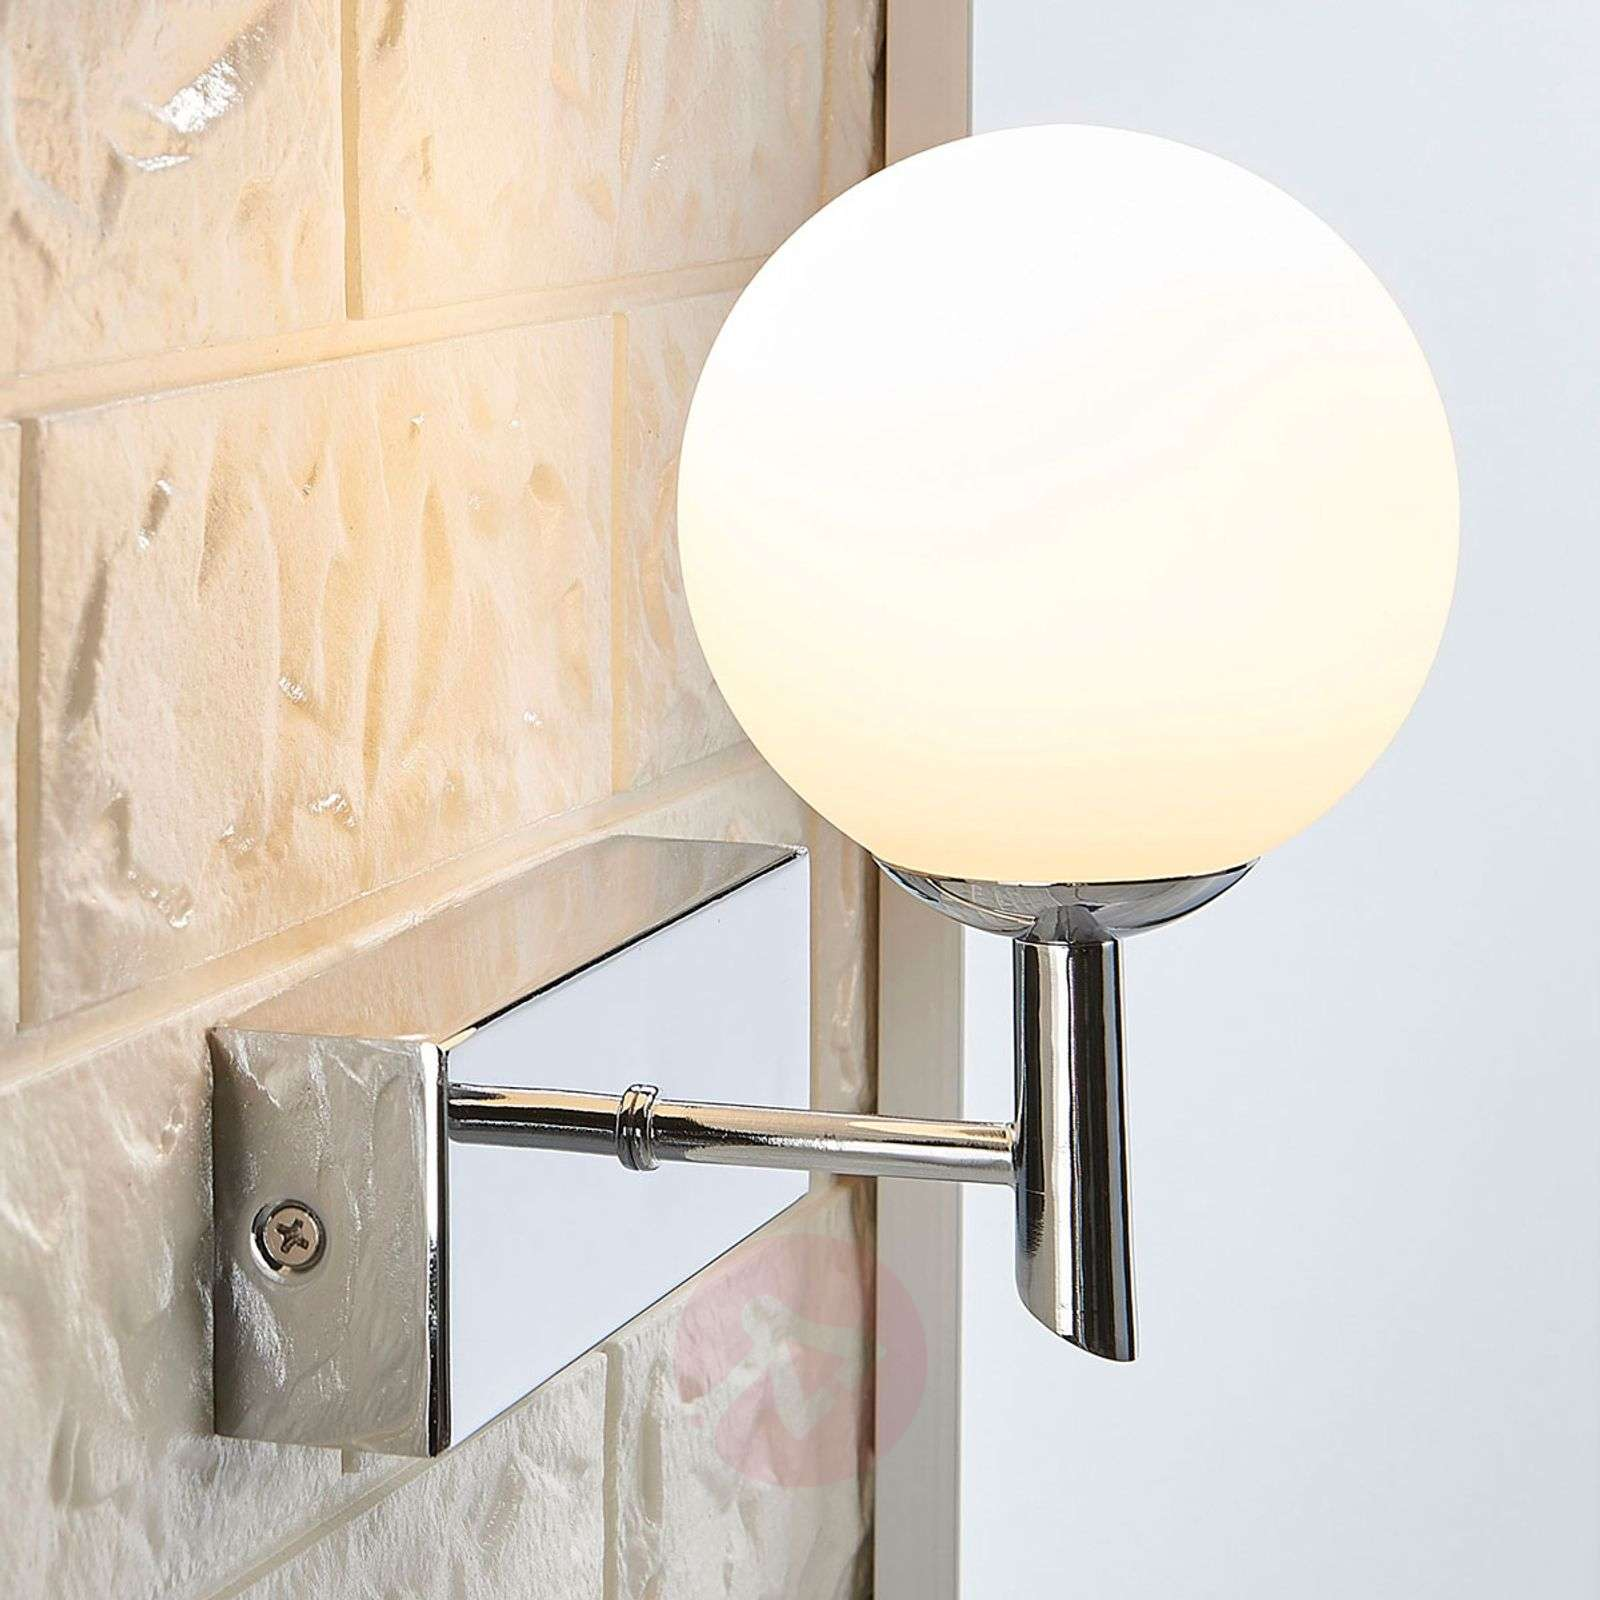 Acquista Applique LED da bagno Florijon, monolampada | Lampade.it